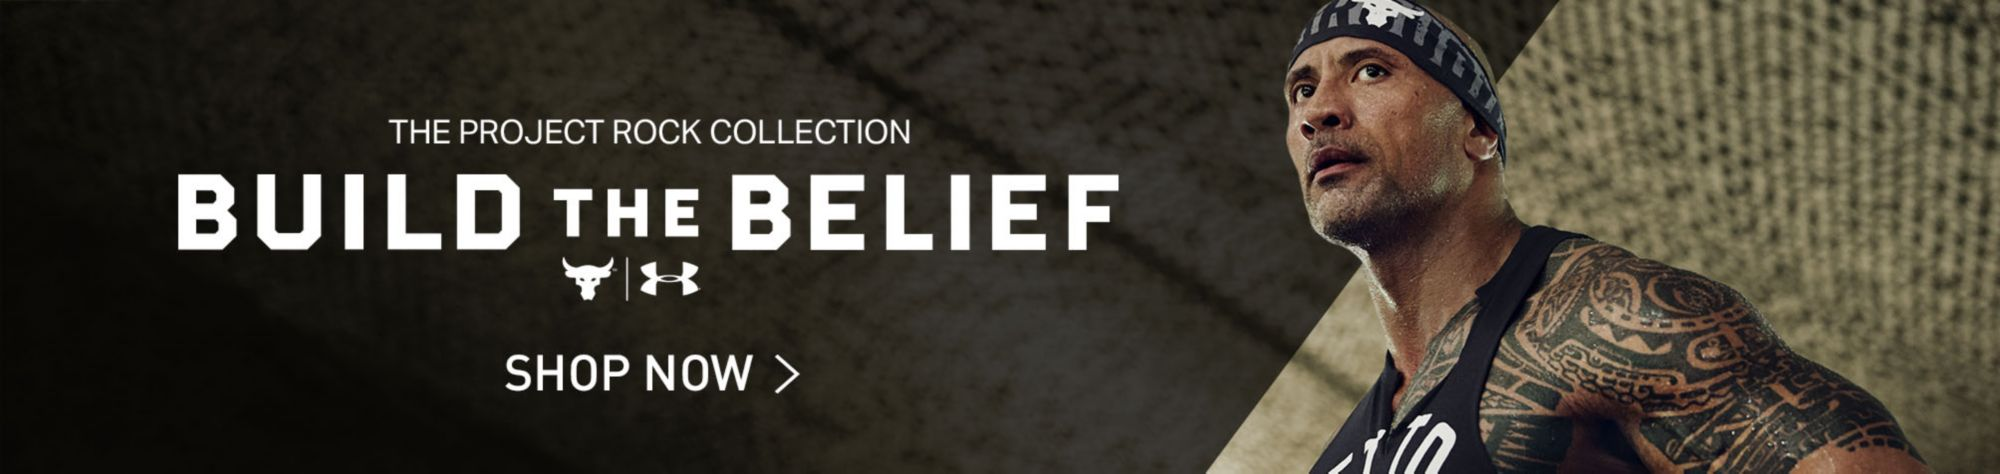 The Rock Under Armour Build The Belief Collection - Shop Now